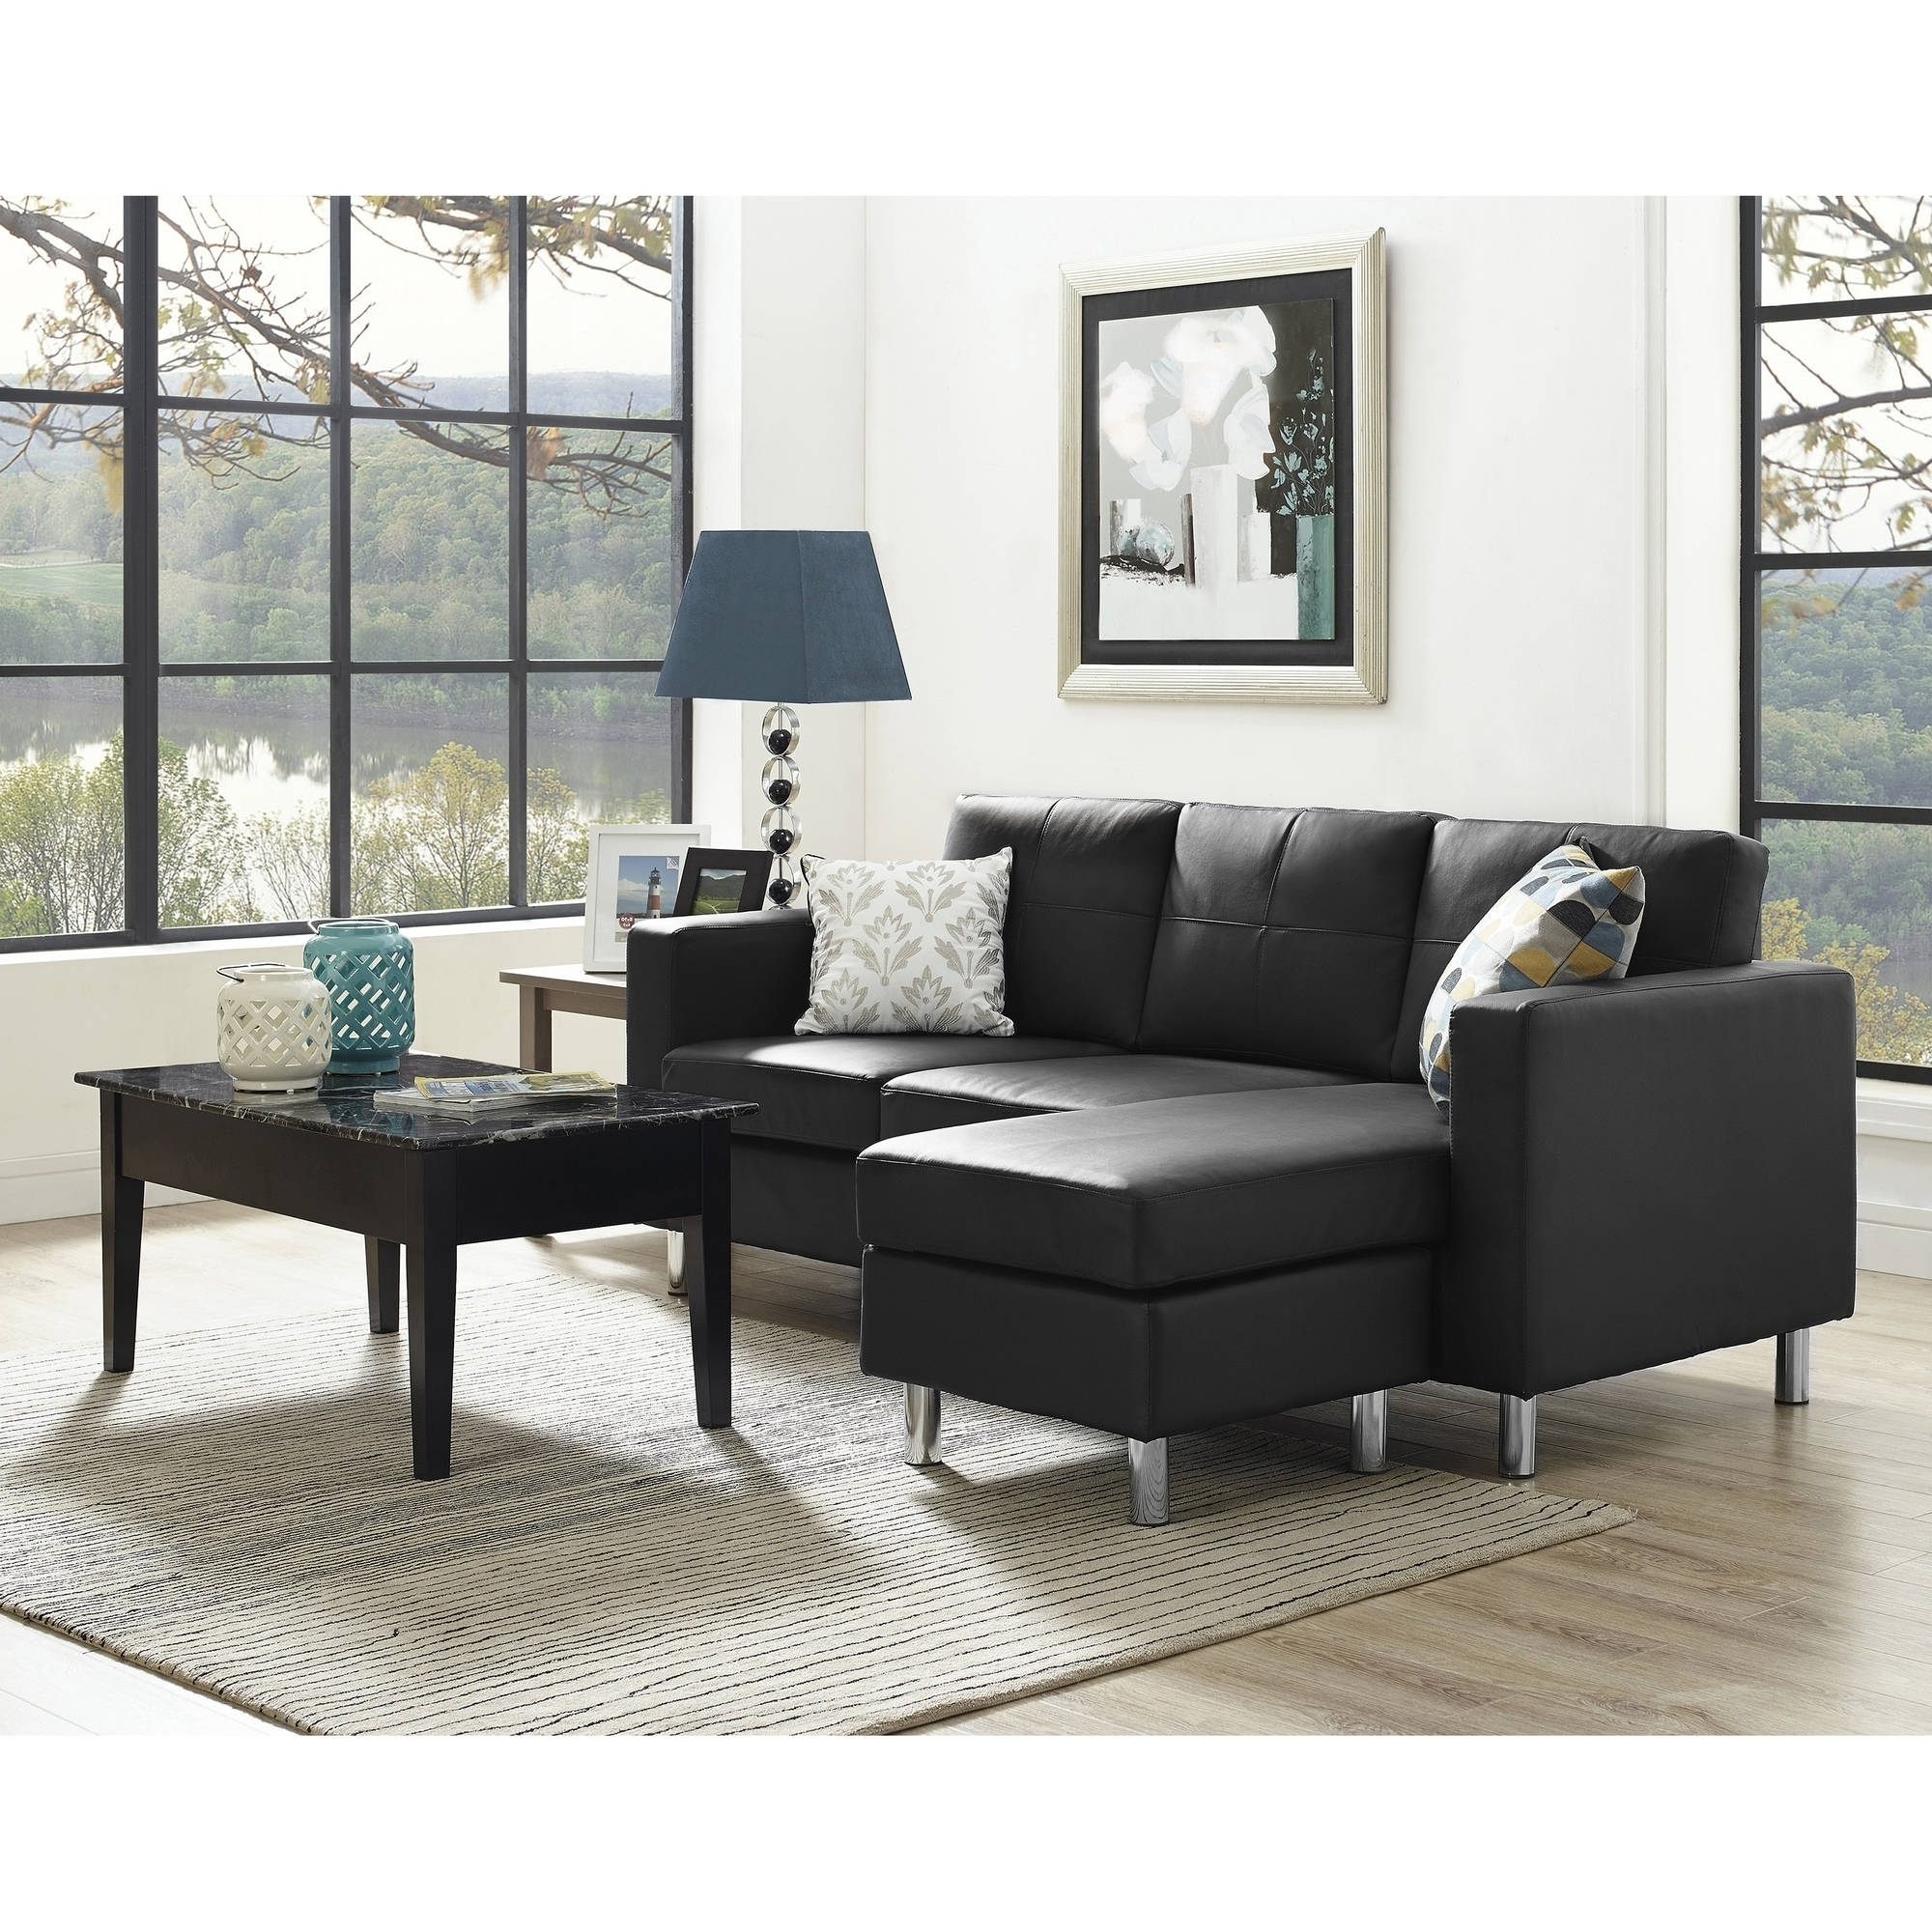 Www Regarding Sectional Sofas For Small Areas (View 15 of 15)